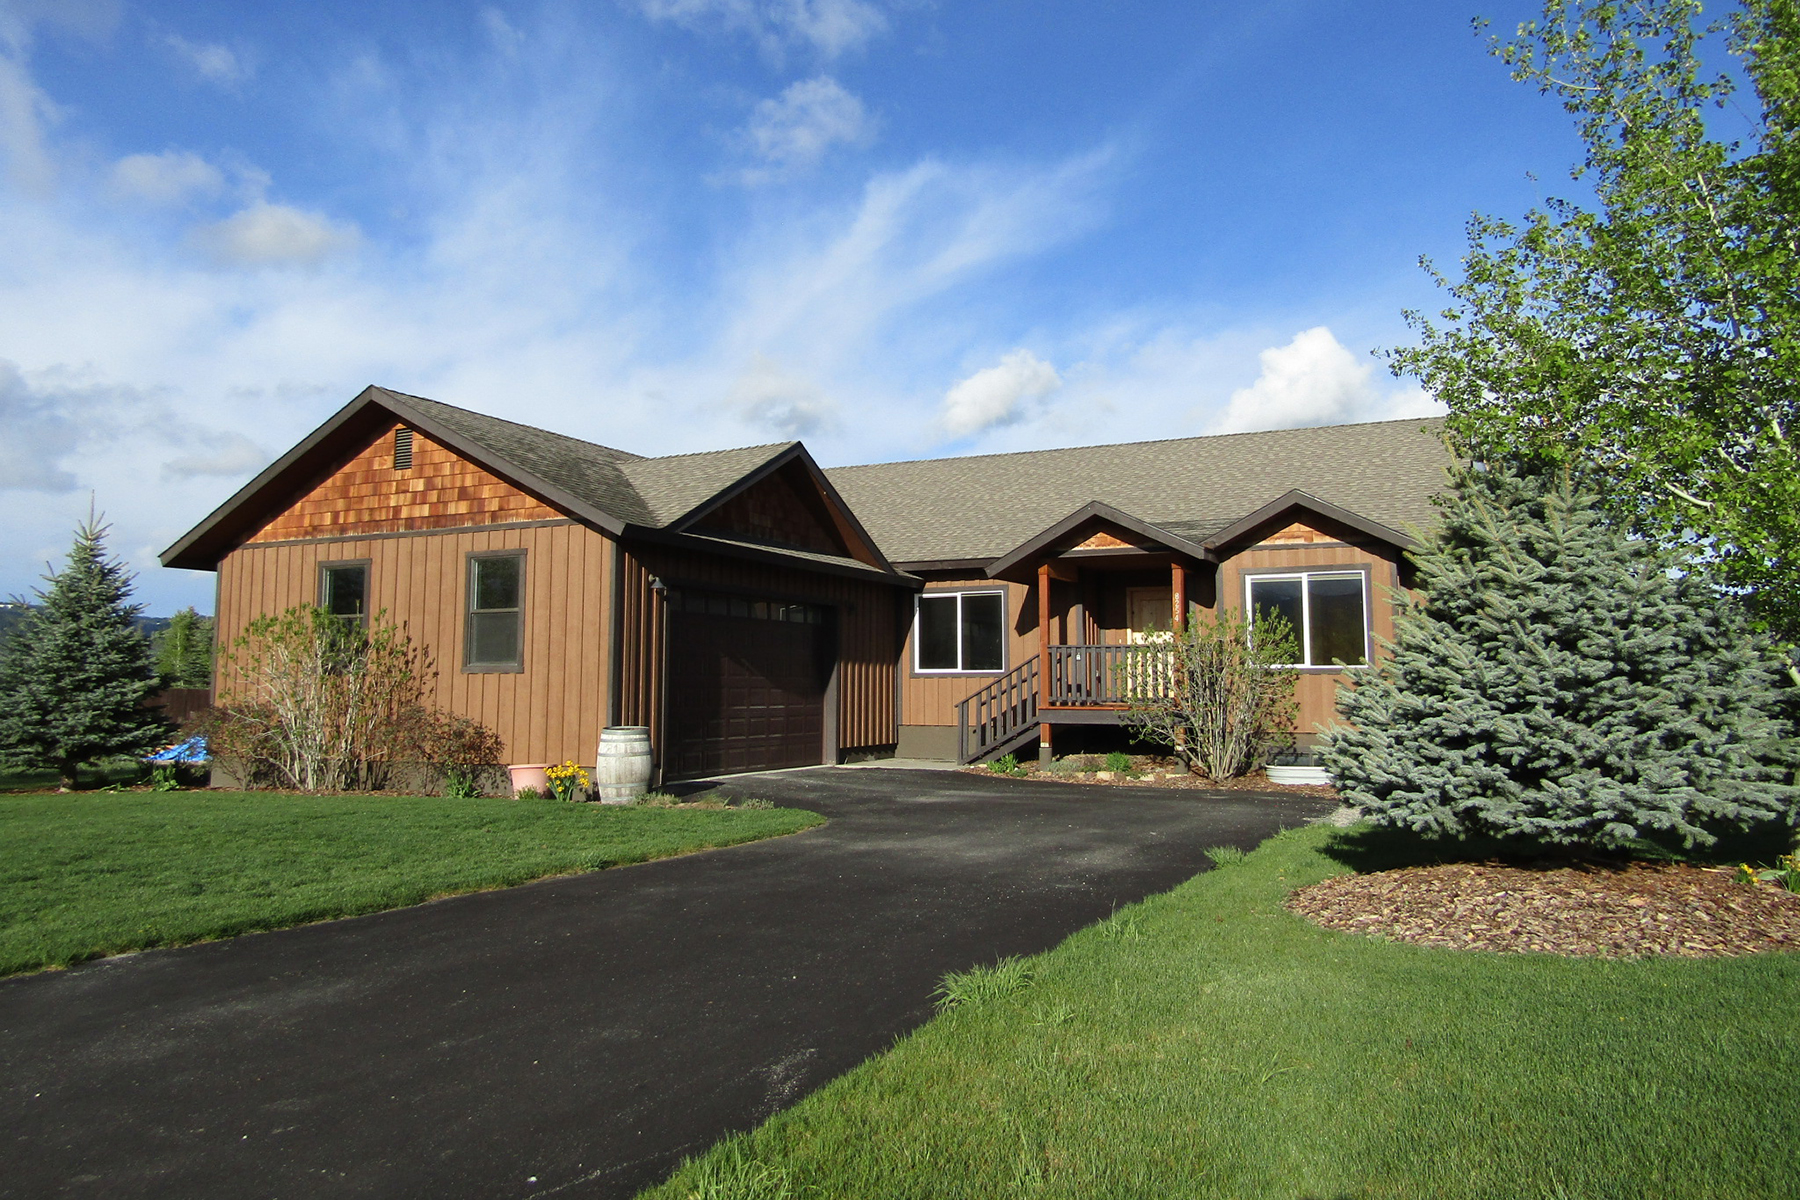 Single Family Home for Active at Brookside Hollow Gem in Victor 8254 Cutthroat Ln Victor, Idaho 83455 United States